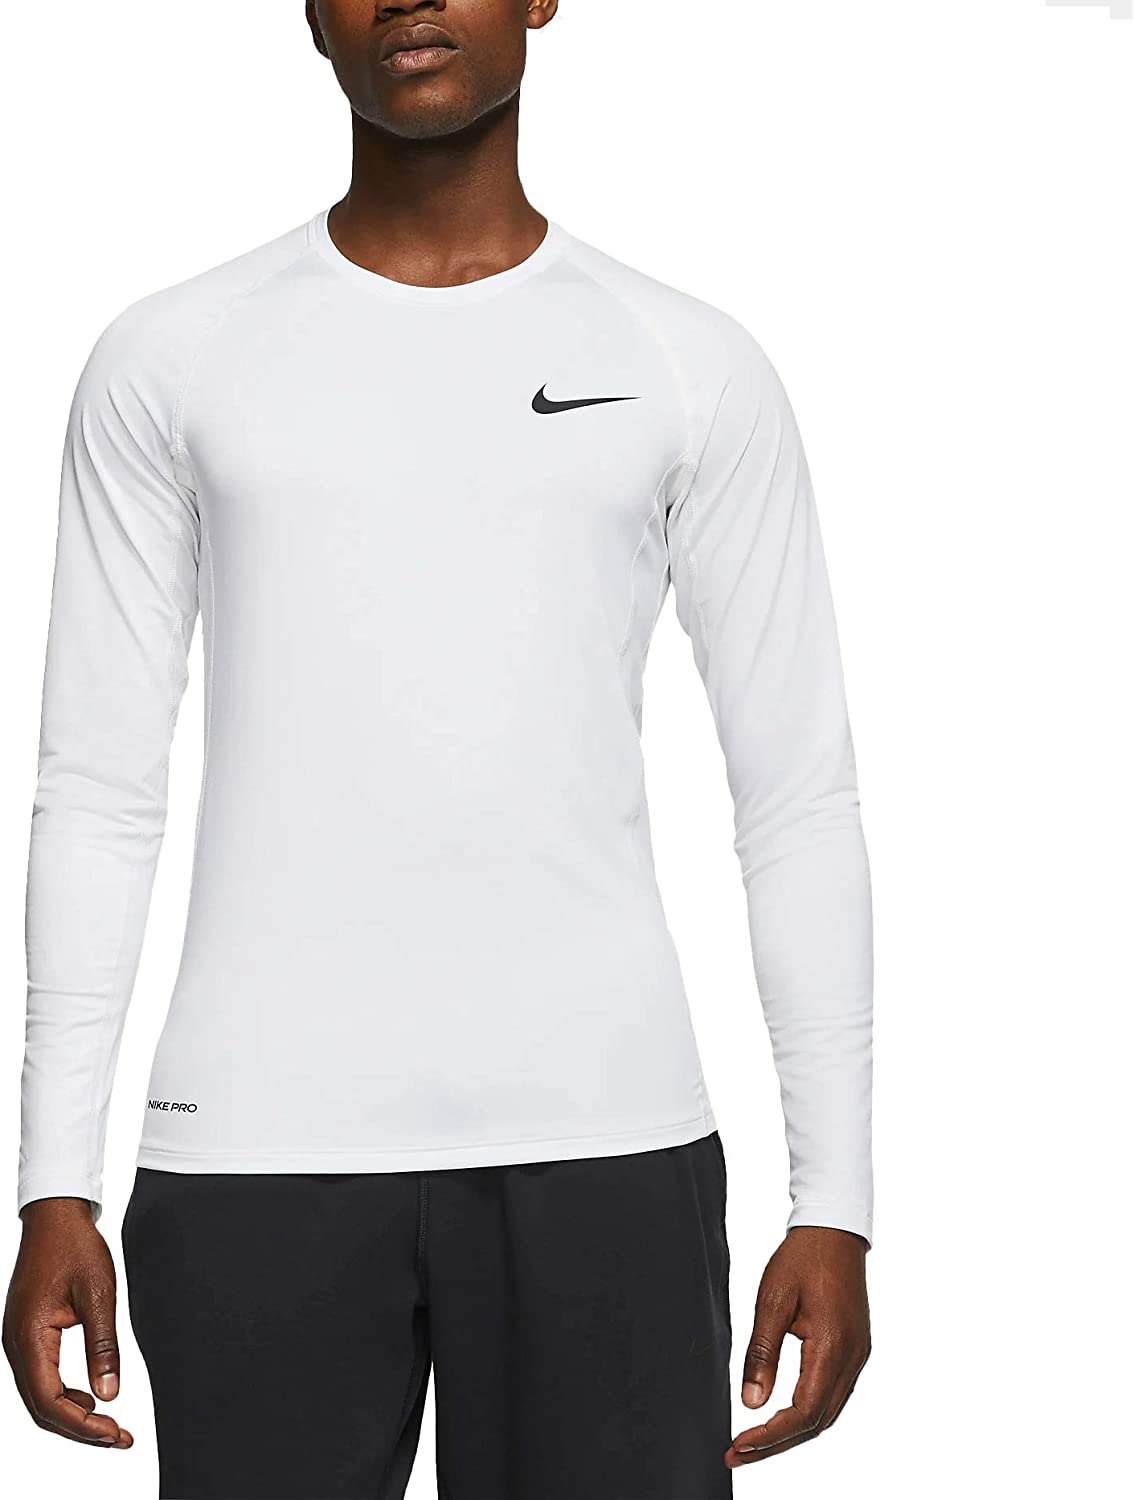 Nike Men's Pro Low-Rise Fitted Top